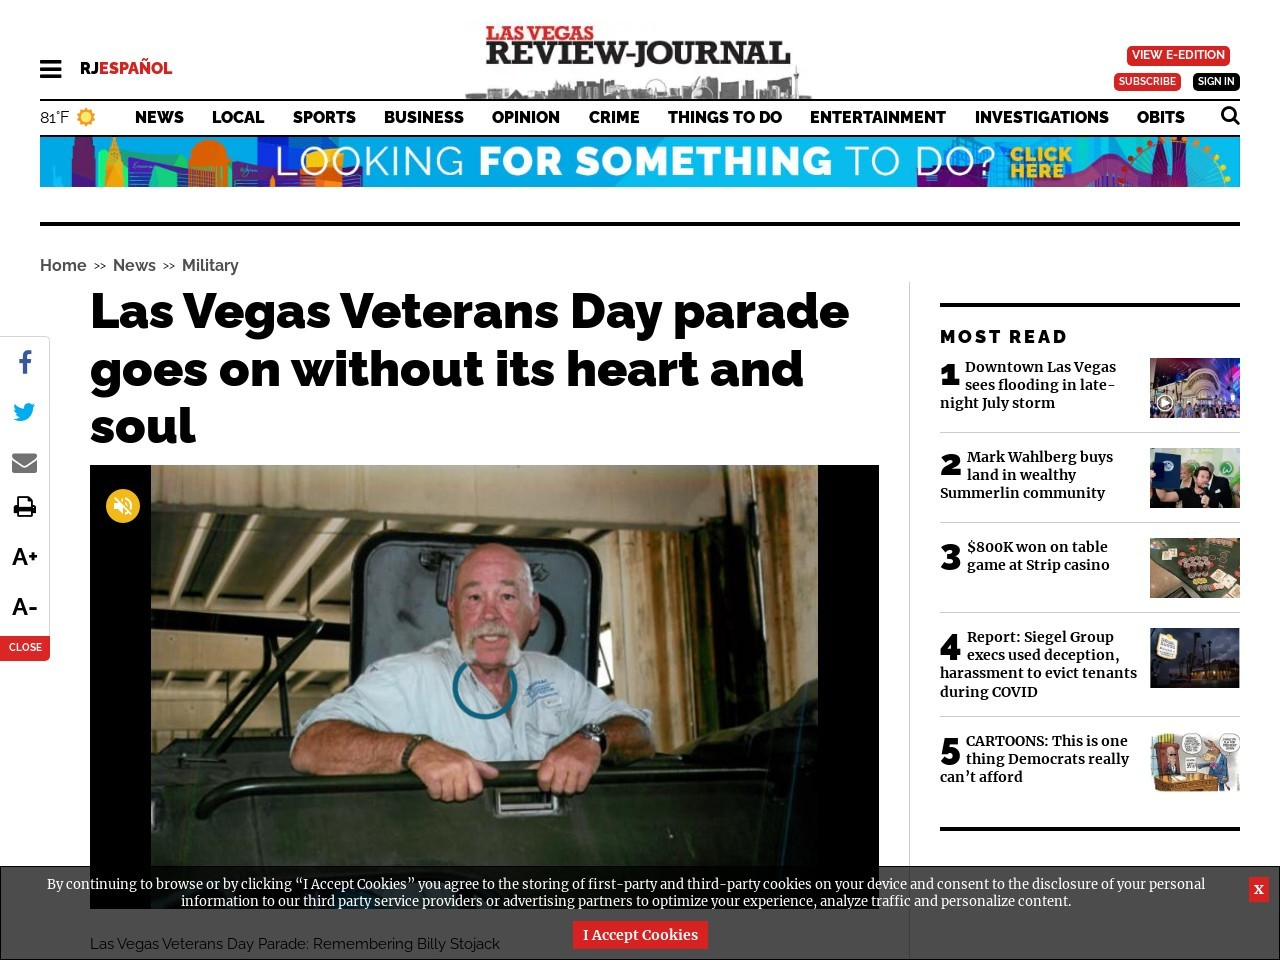 Las Vegas Veterans Day parade goes on without its heart and soul